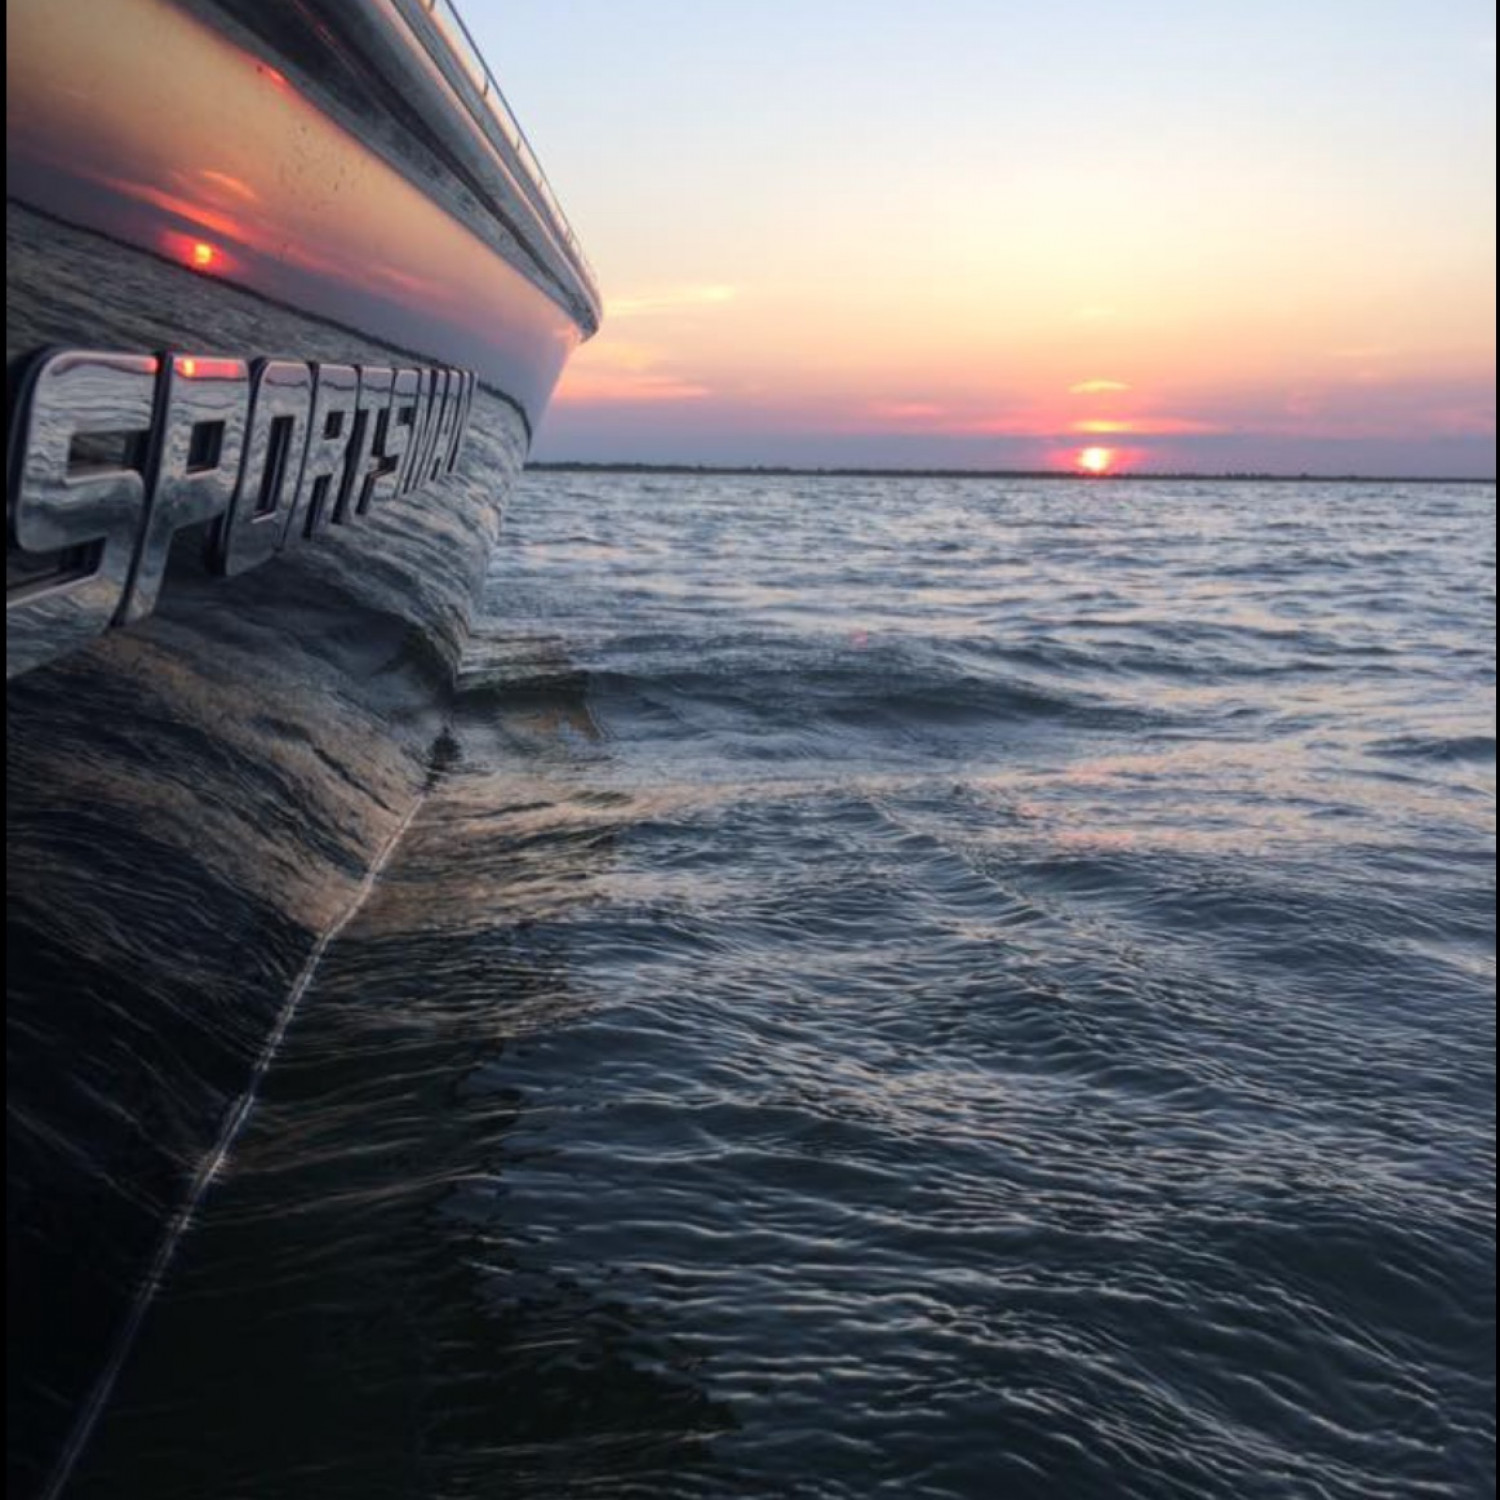 Title: Galveston bay sunset - On board their Sportsman Masters 227 Bay Boat - Location: Galveston, TX. Participating in the Photo Contest #SportsmanMarch2018